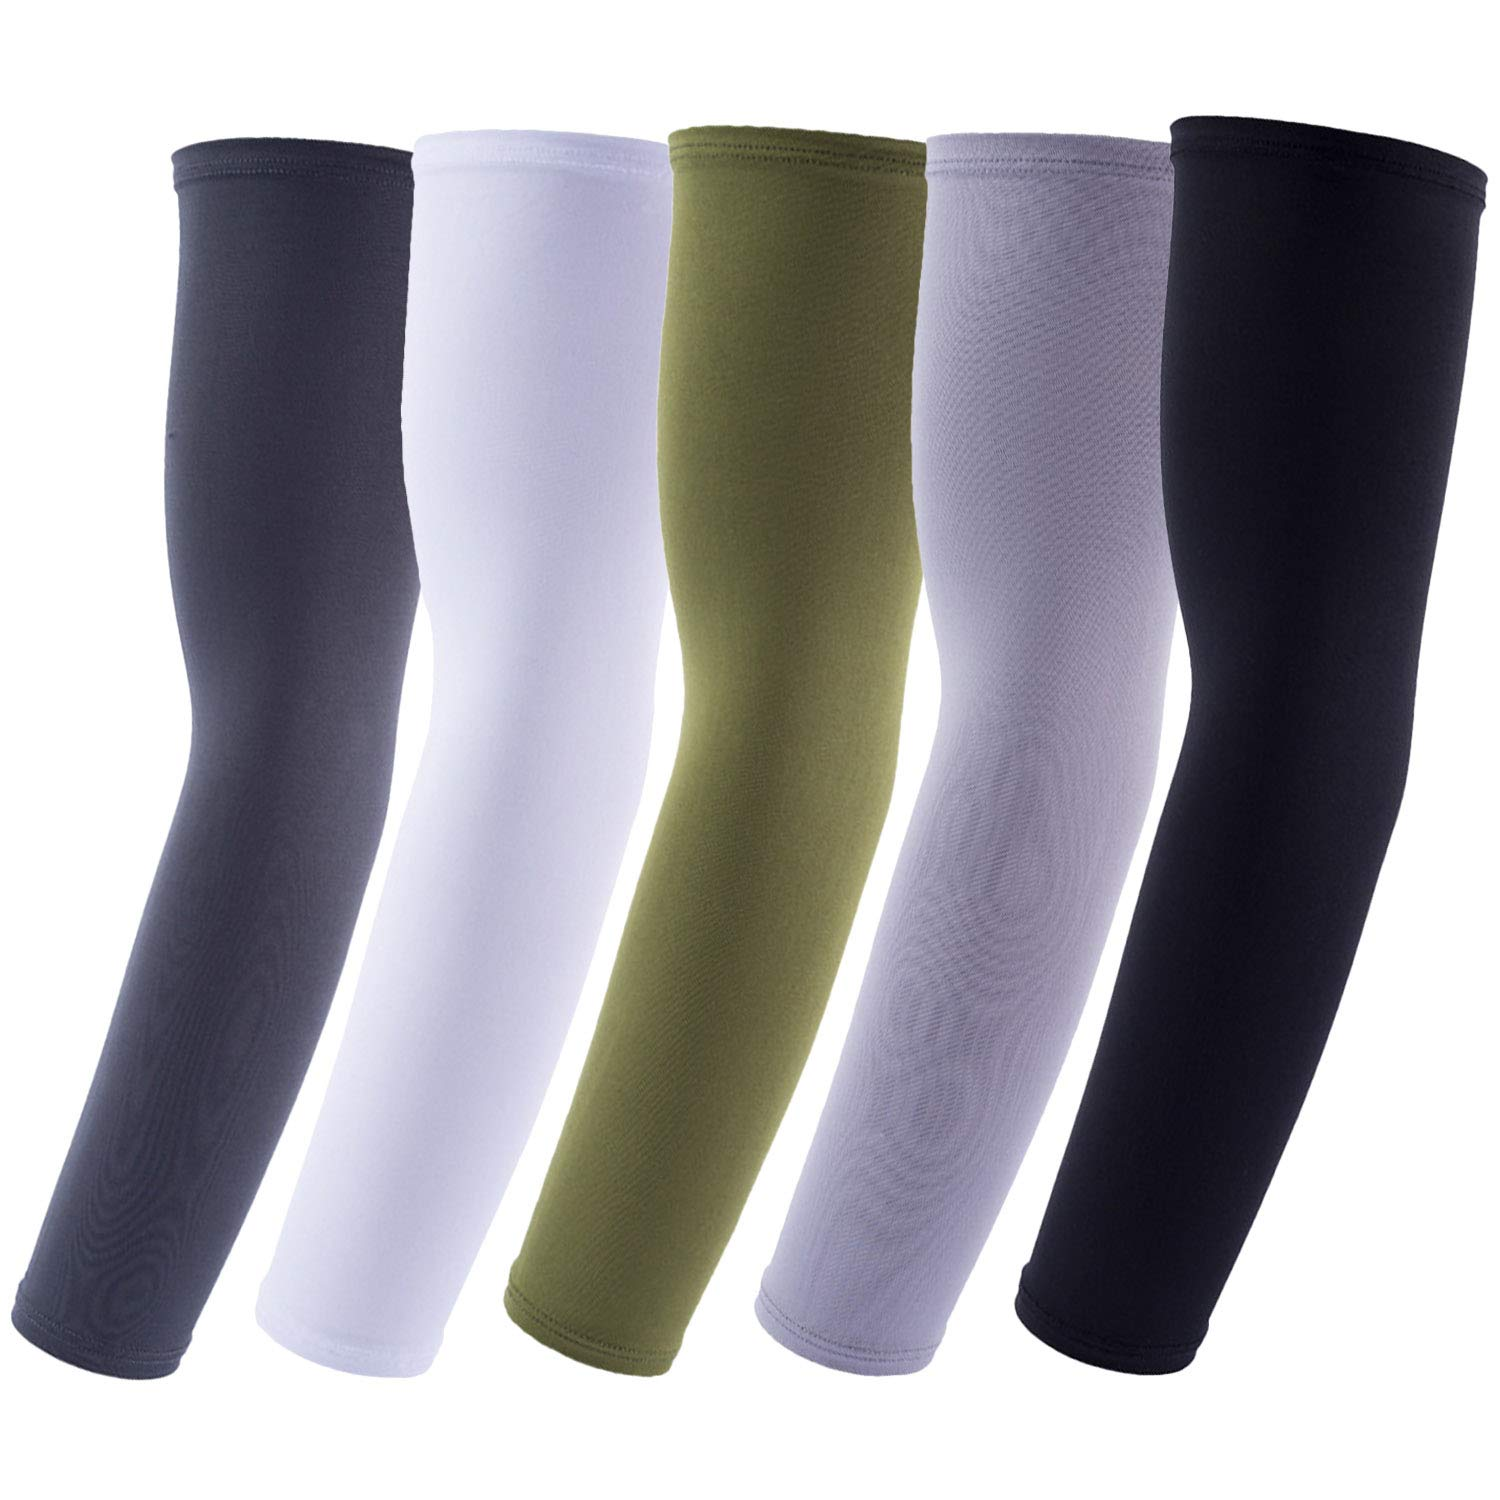 Xushop 5 Pair UV Protection Cooling Arm Sleeves for Outdoor Activities (Black/White/Dark gray/Light Gray/Green)